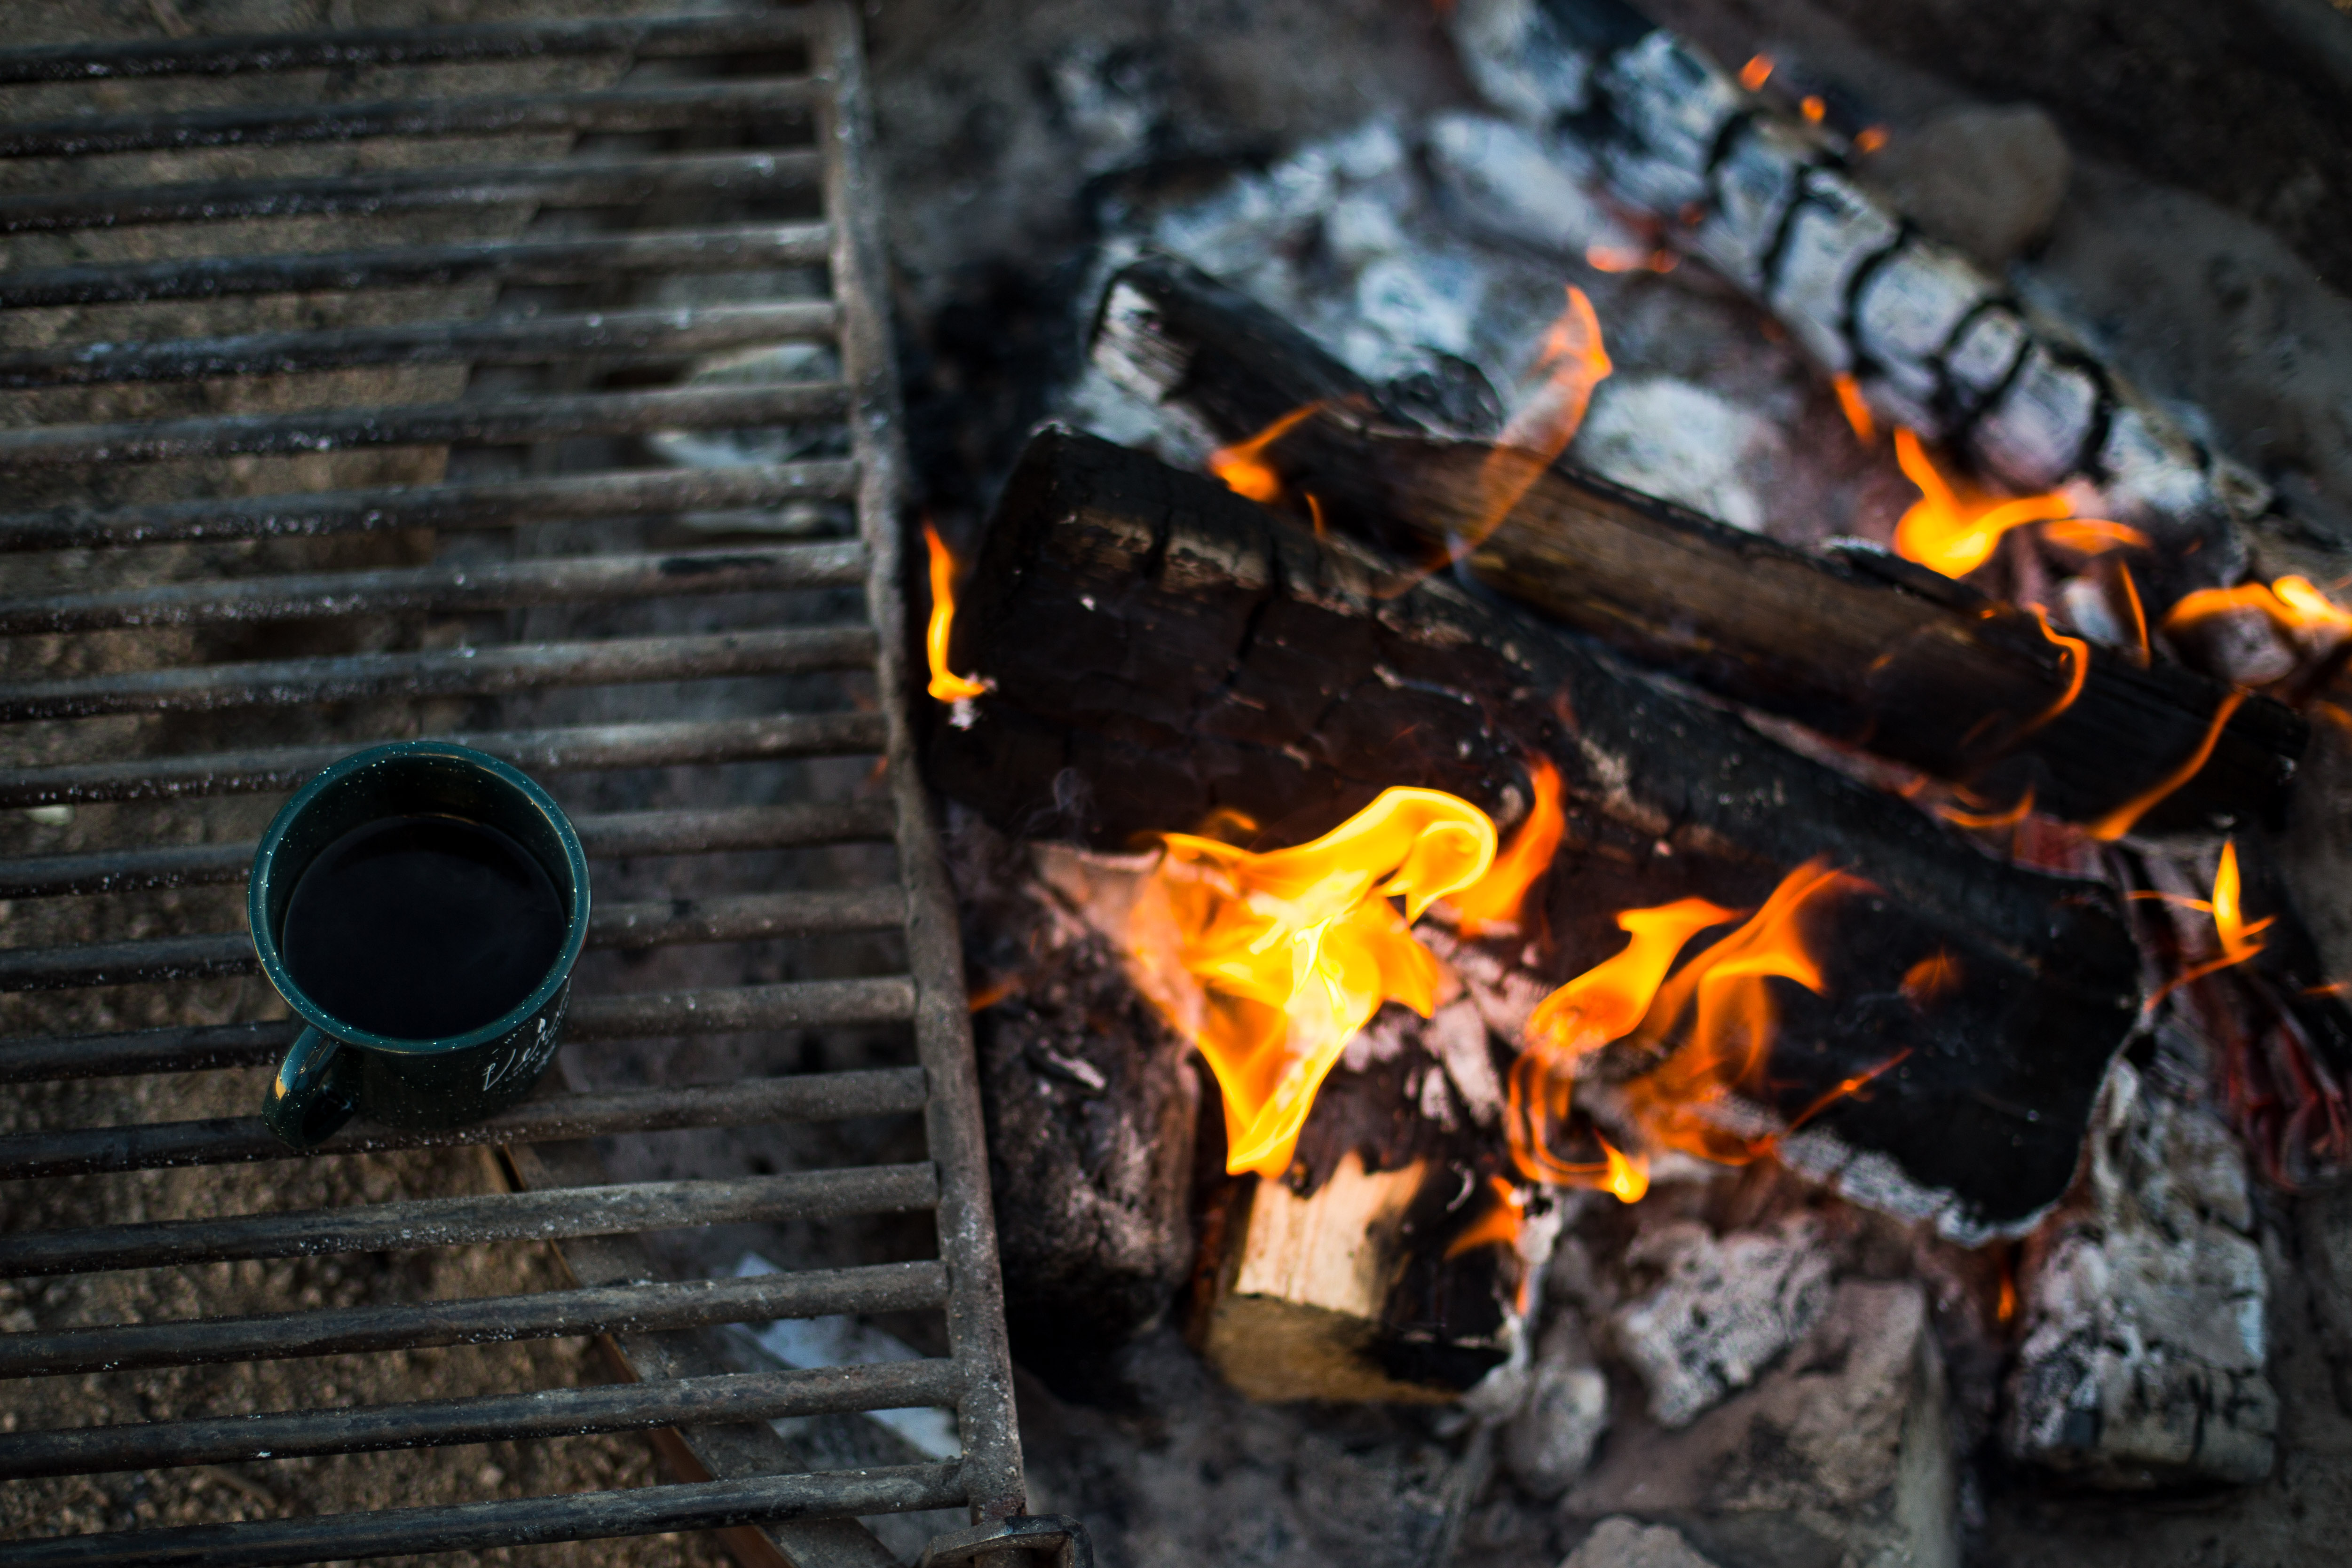 camping in the woods with a fire outdoors wood fire coffee mug camping and campfire hd photo by tim wright timdwright on unsplash